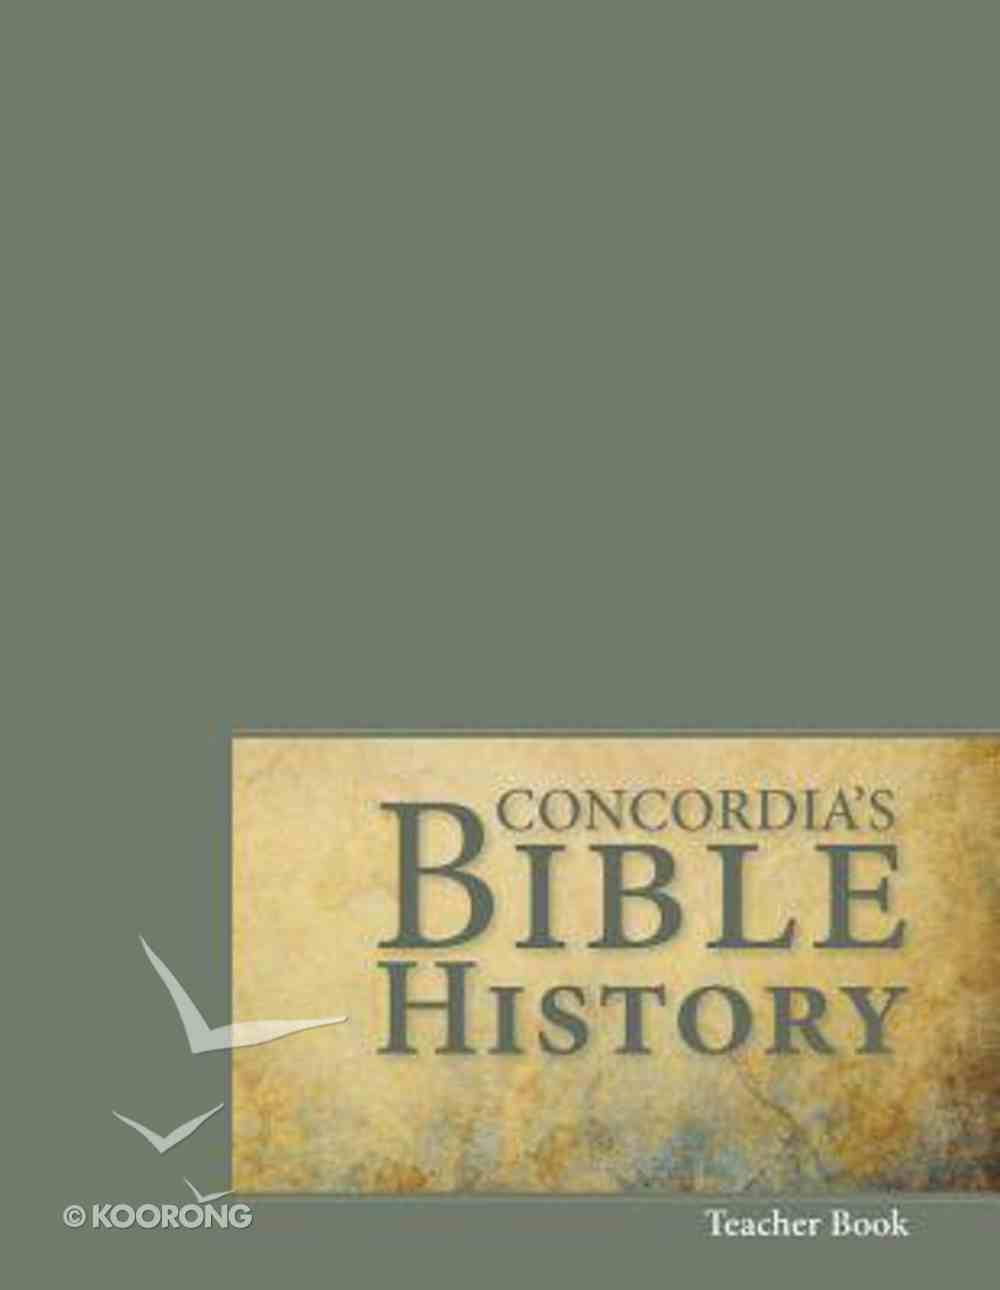 Concordia's Bible History (Teacher Book) Paperback